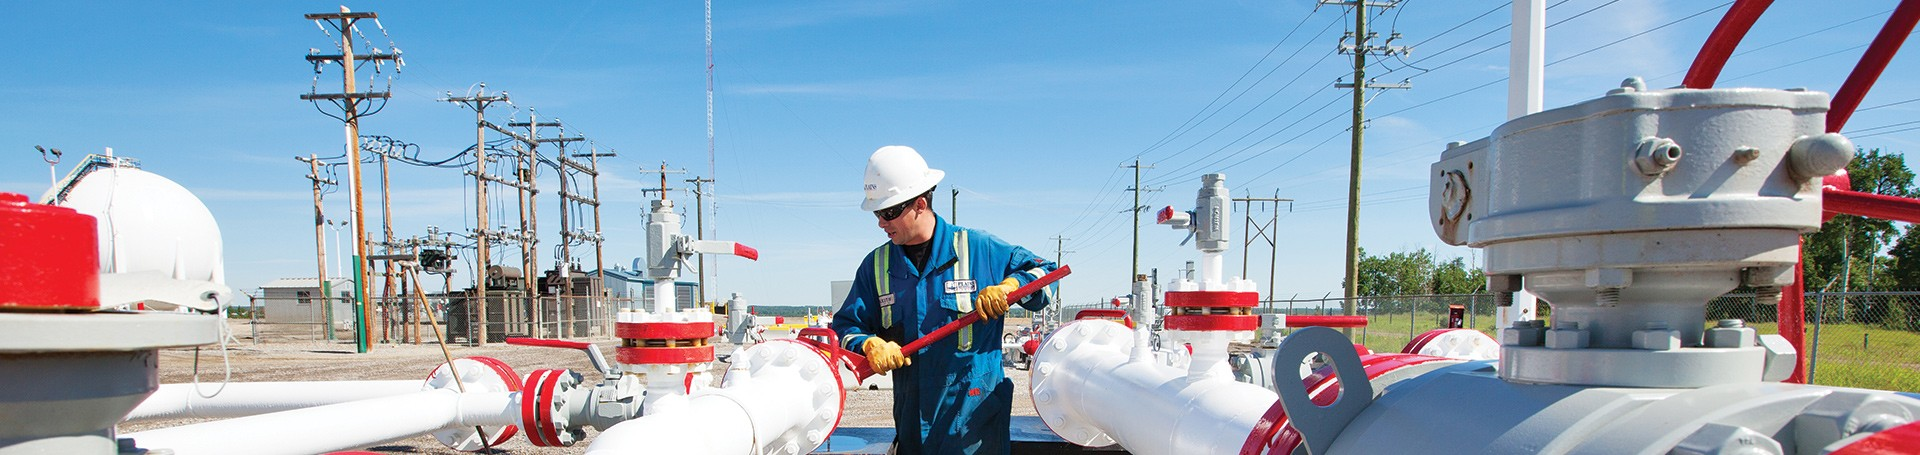 At Plains, the safety of our employees, the community, and the environment is our top priority.